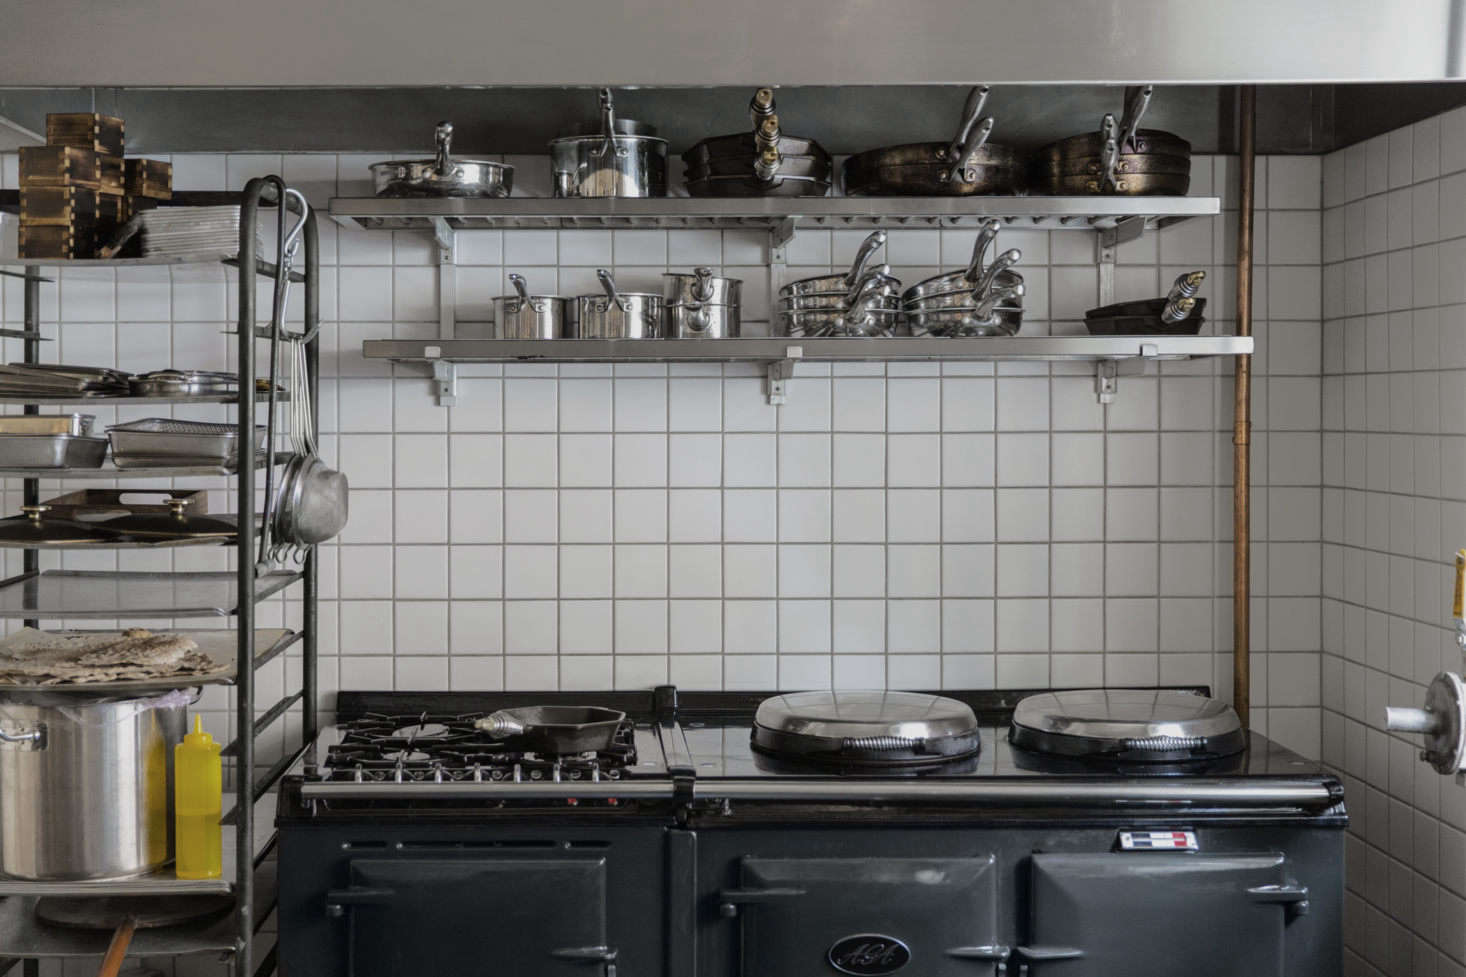 The small kitchen behind the bar (shown here when service is not in session) has simple components: floor-to-ceiling square tile, a charcoal-colored Aga range, and stacks of pots and pans.